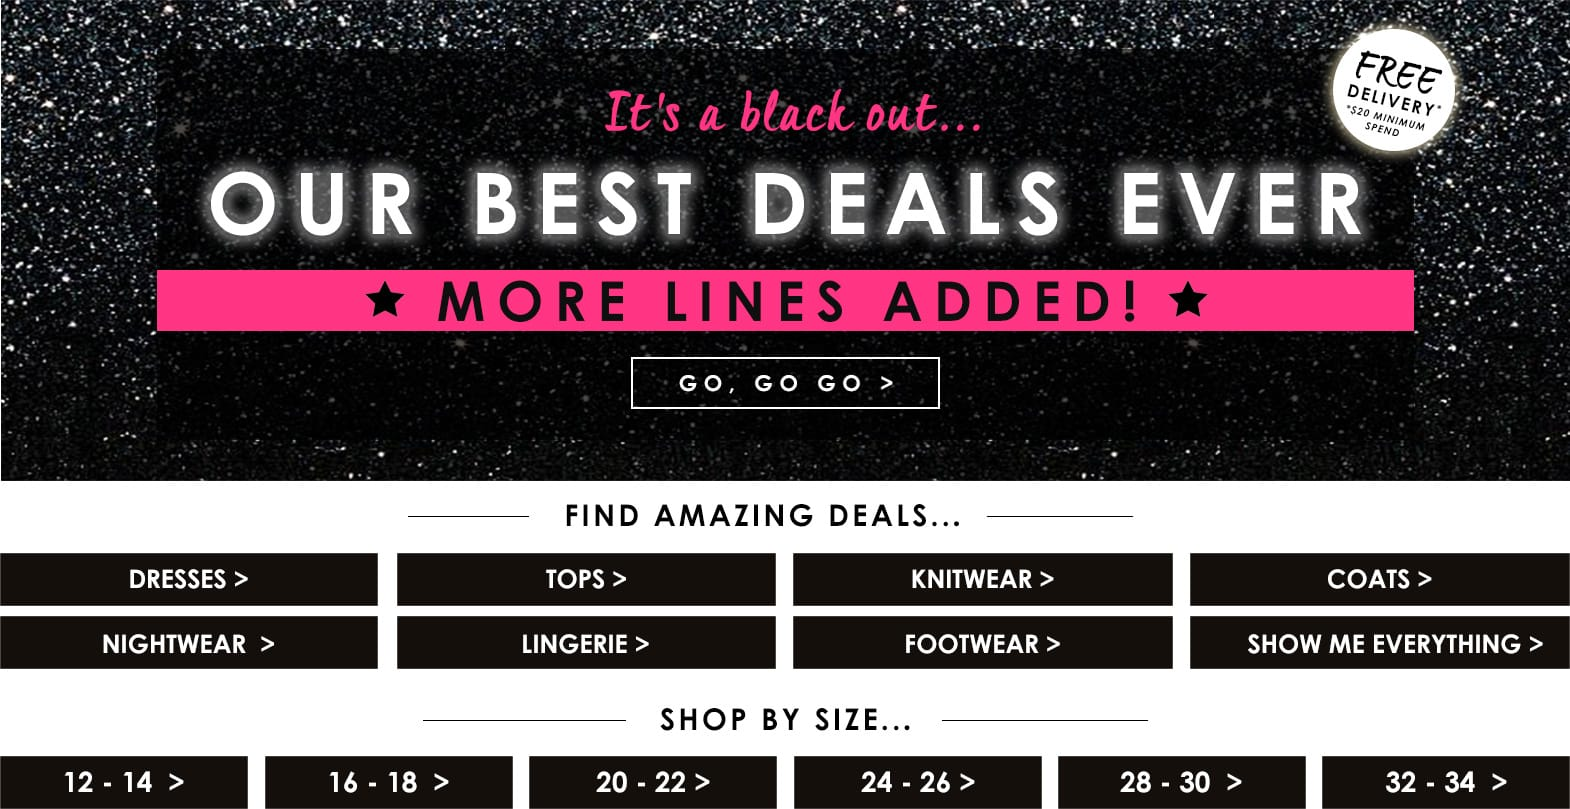 Our Best Deals Ever >